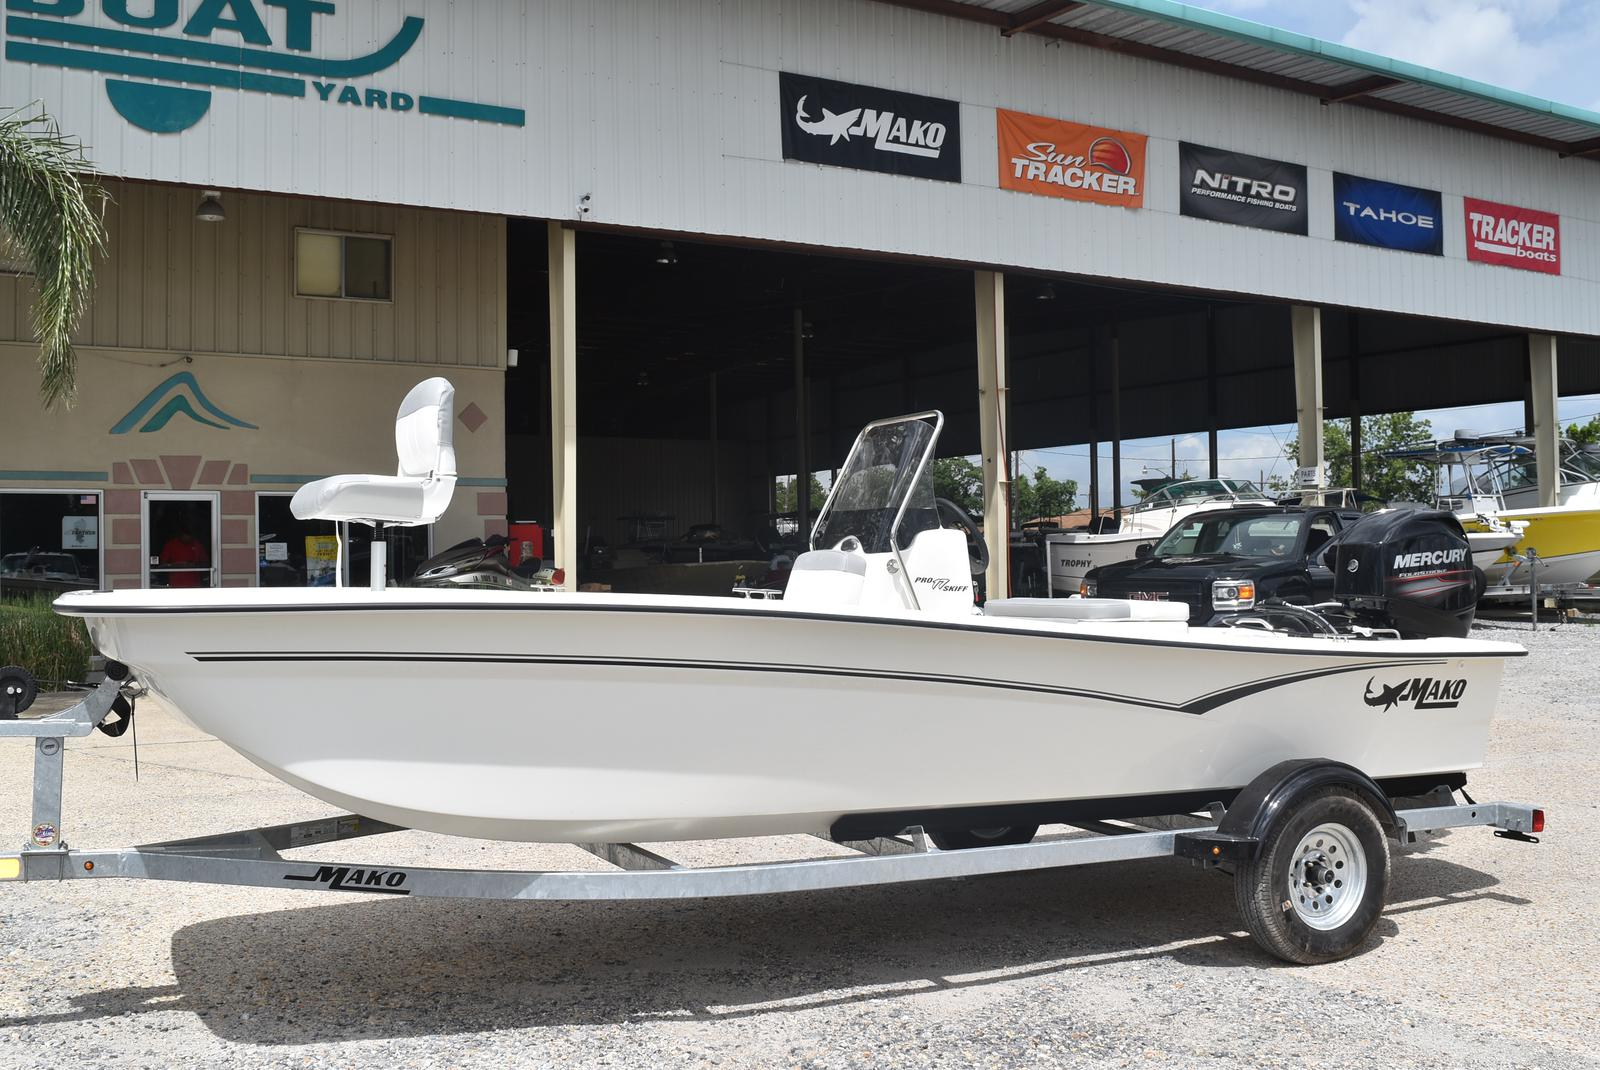 2020 Mako boat for sale, model of the boat is Pro Skiff 17, 75 ELPT & Image # 128 of 702